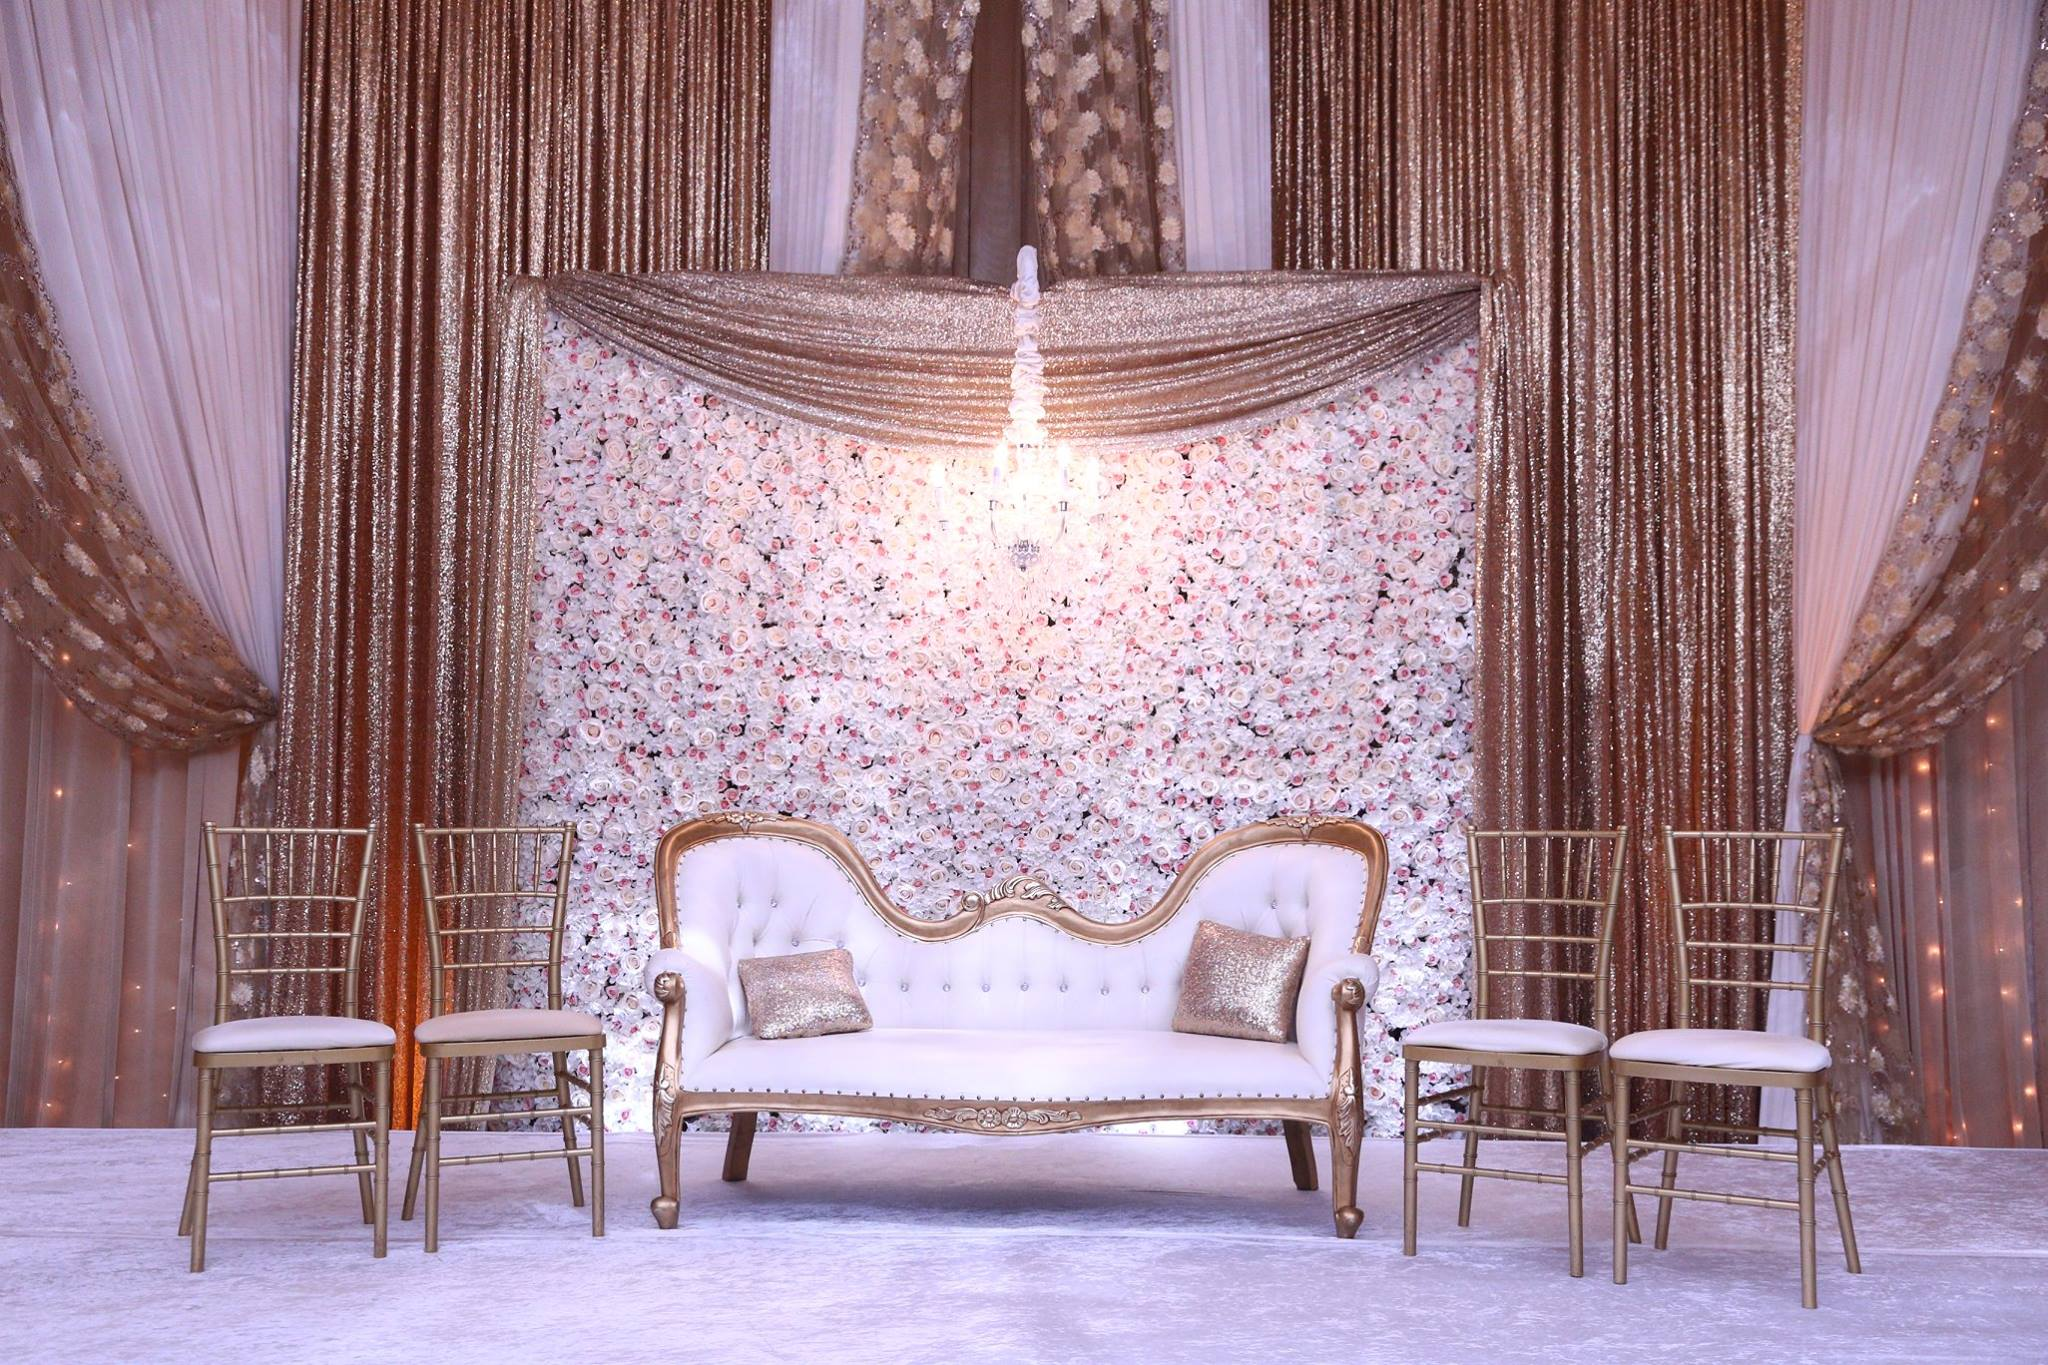 Gold Sequin Backdrop with Flower Wall Accent and Chandelier.jpg